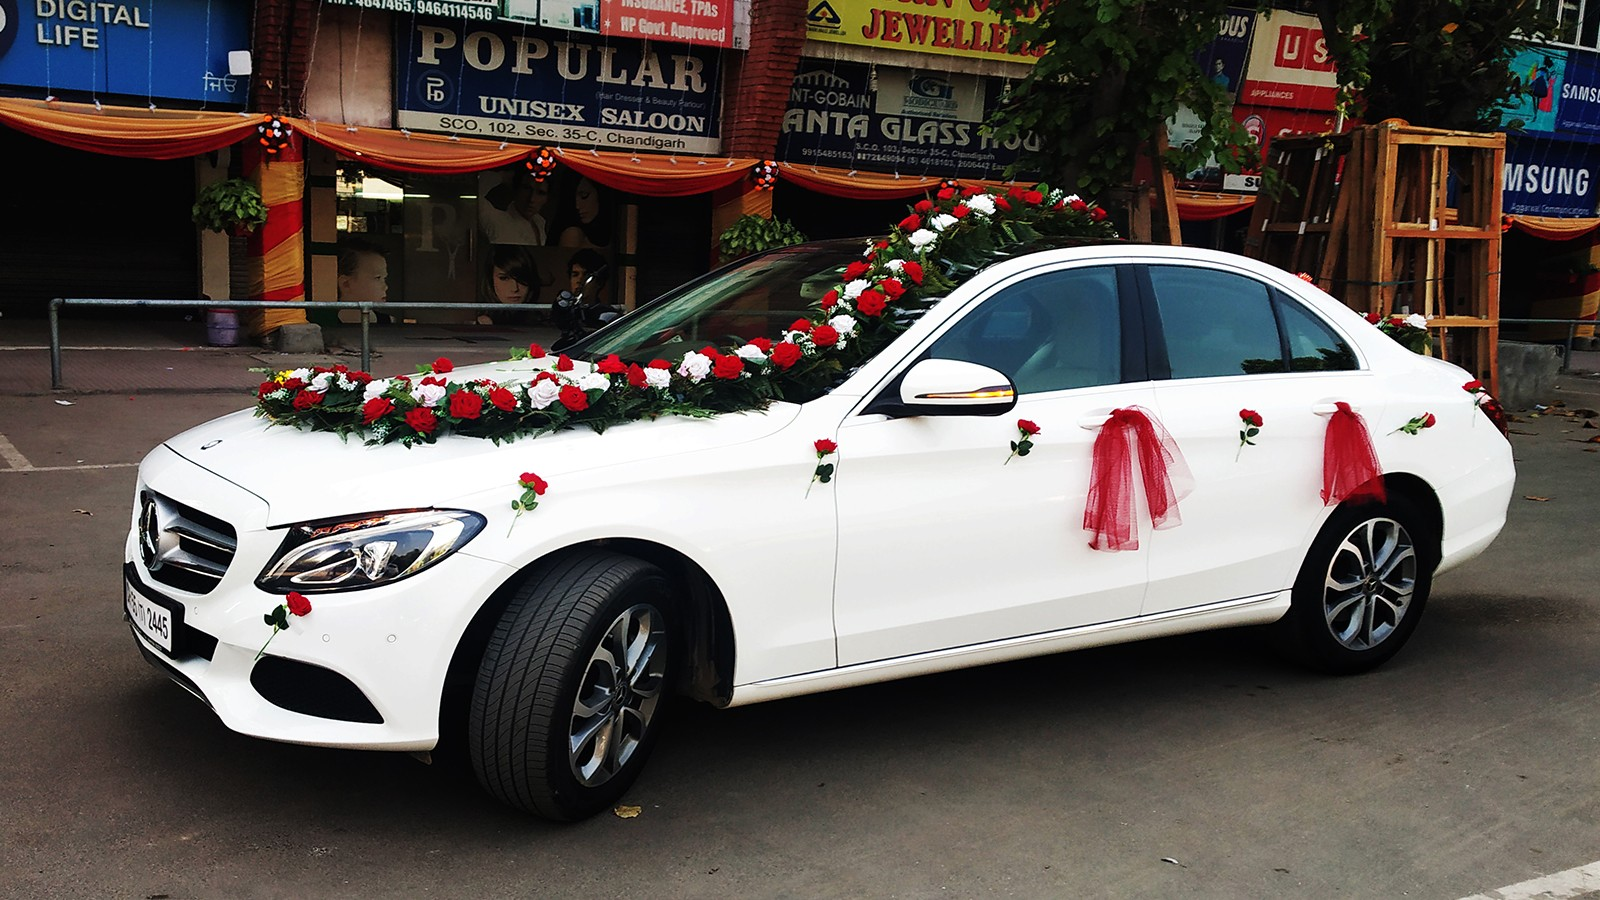 Doli mercedes car in Chandigarh Mercedes for doli, Luxury mercedes cars for doli, Doli mercedes cars in Chandigarh Kharar wedding cars Luxury wedding car hire in Kharar like Audi, Mercedes, Bmw, Jaguar, Fortuner, Honda City, Verna